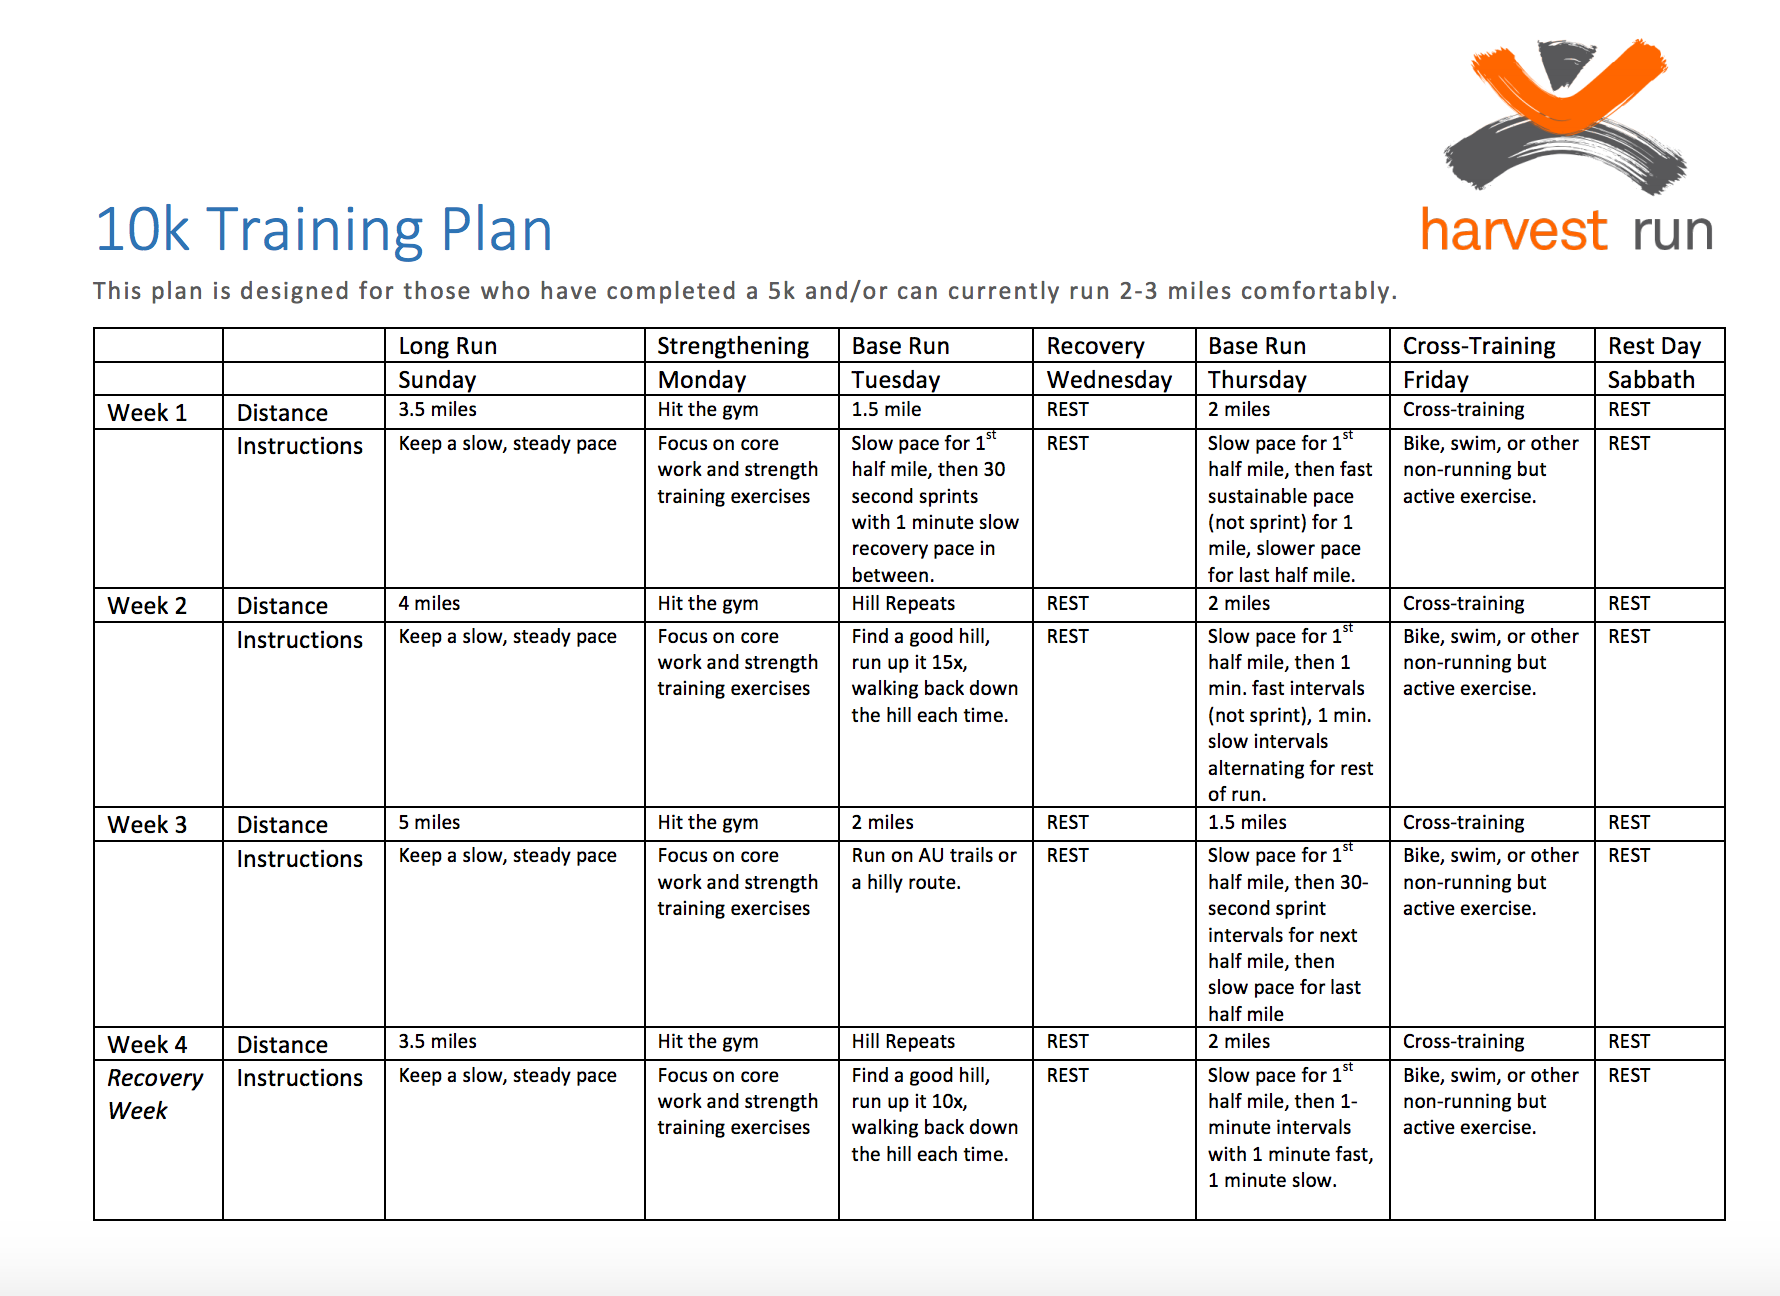 Harvest run office of alumni services download training plan xflitez Image collections